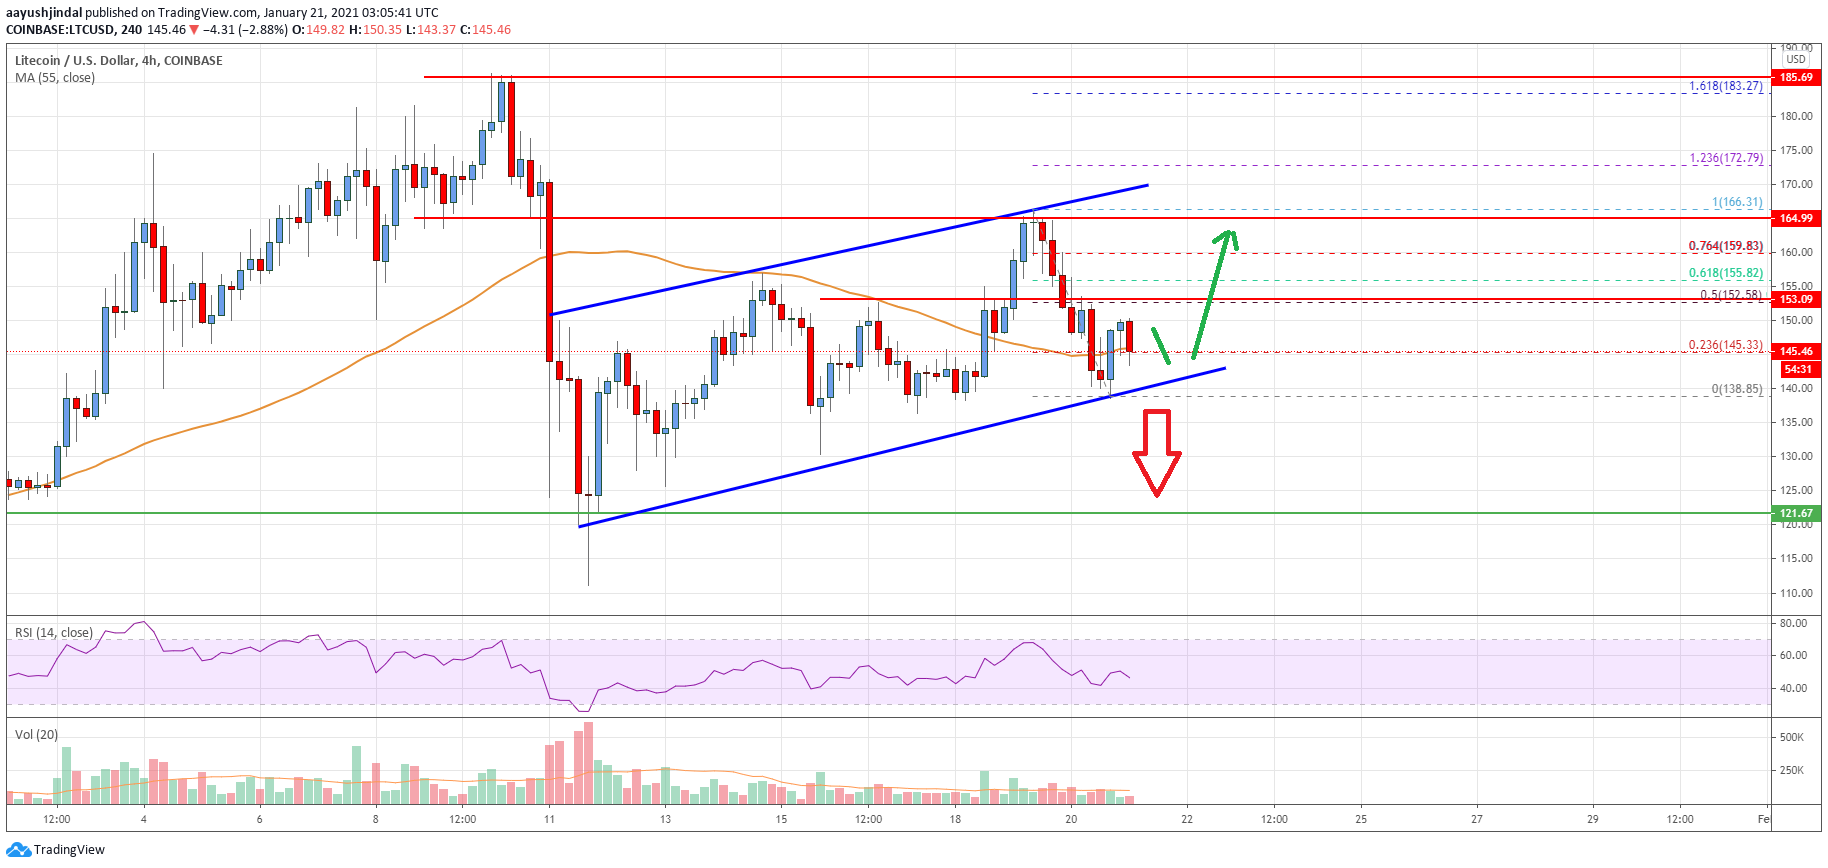 Litecoin (LTC) Price Analysis: Holding Uptrend Support at $140